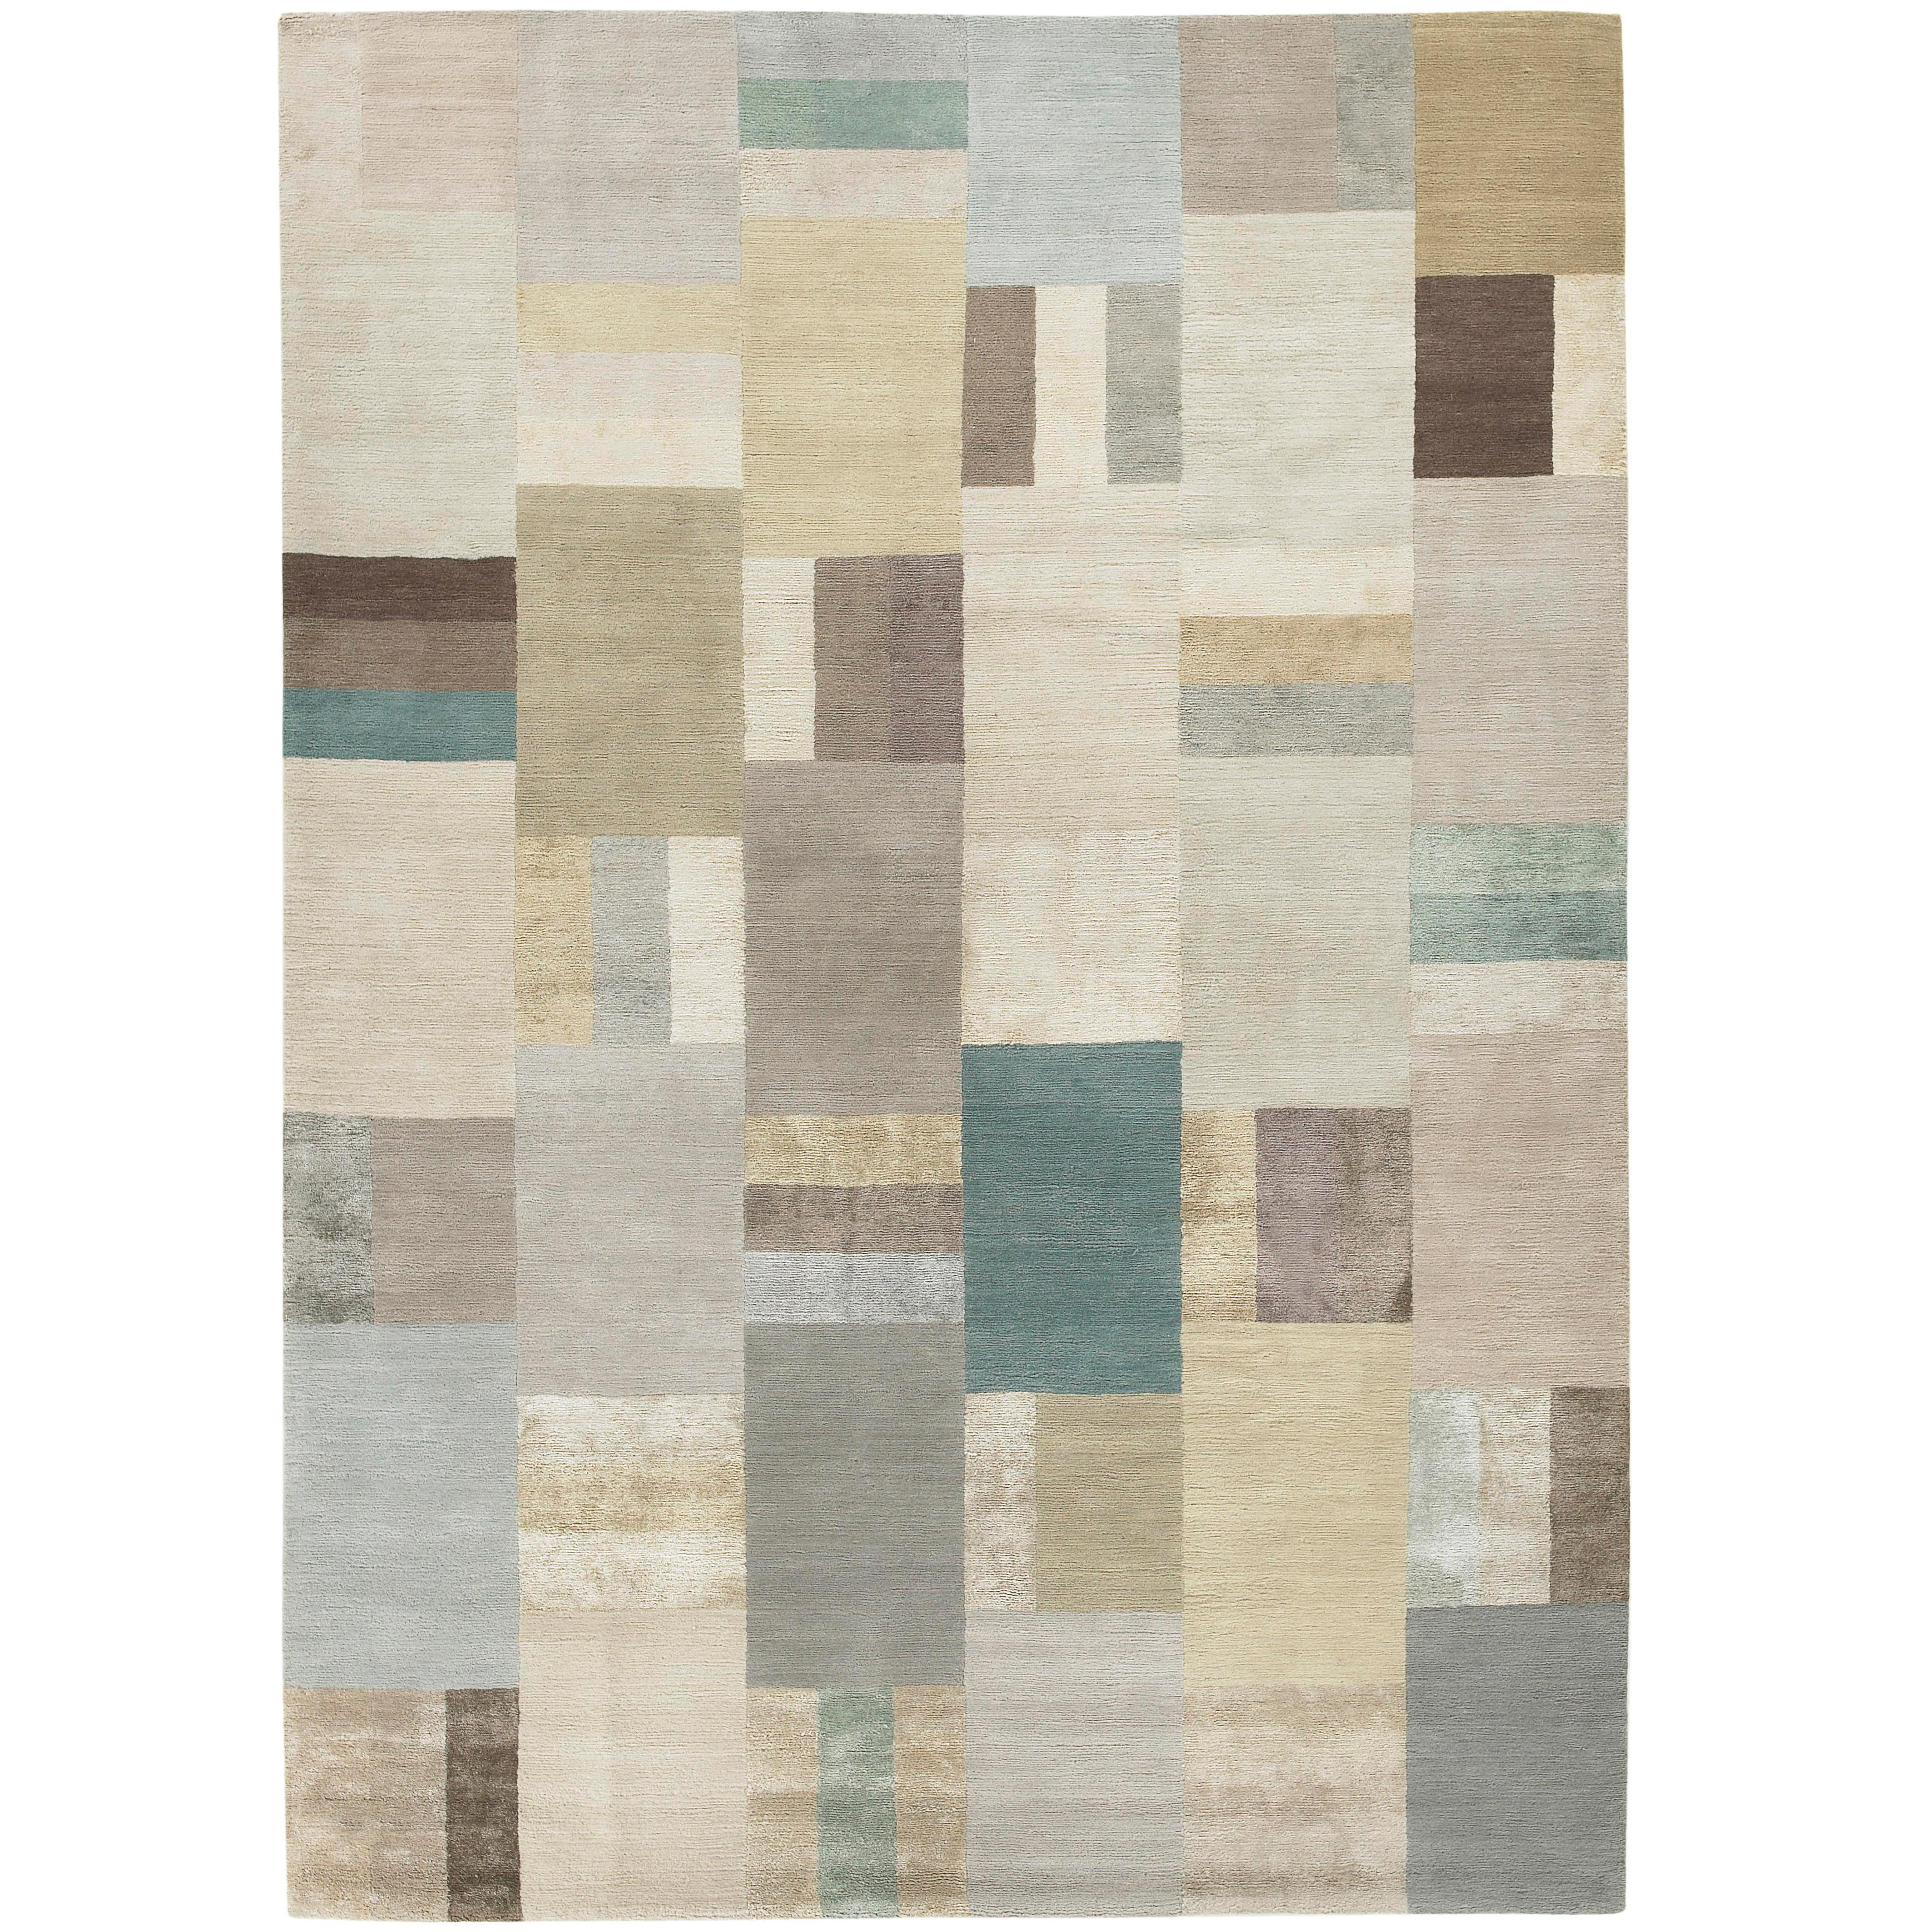 Hue Pale Hand-Knotted 10x8 Rug in Wool and Silk by Christopher Sharp